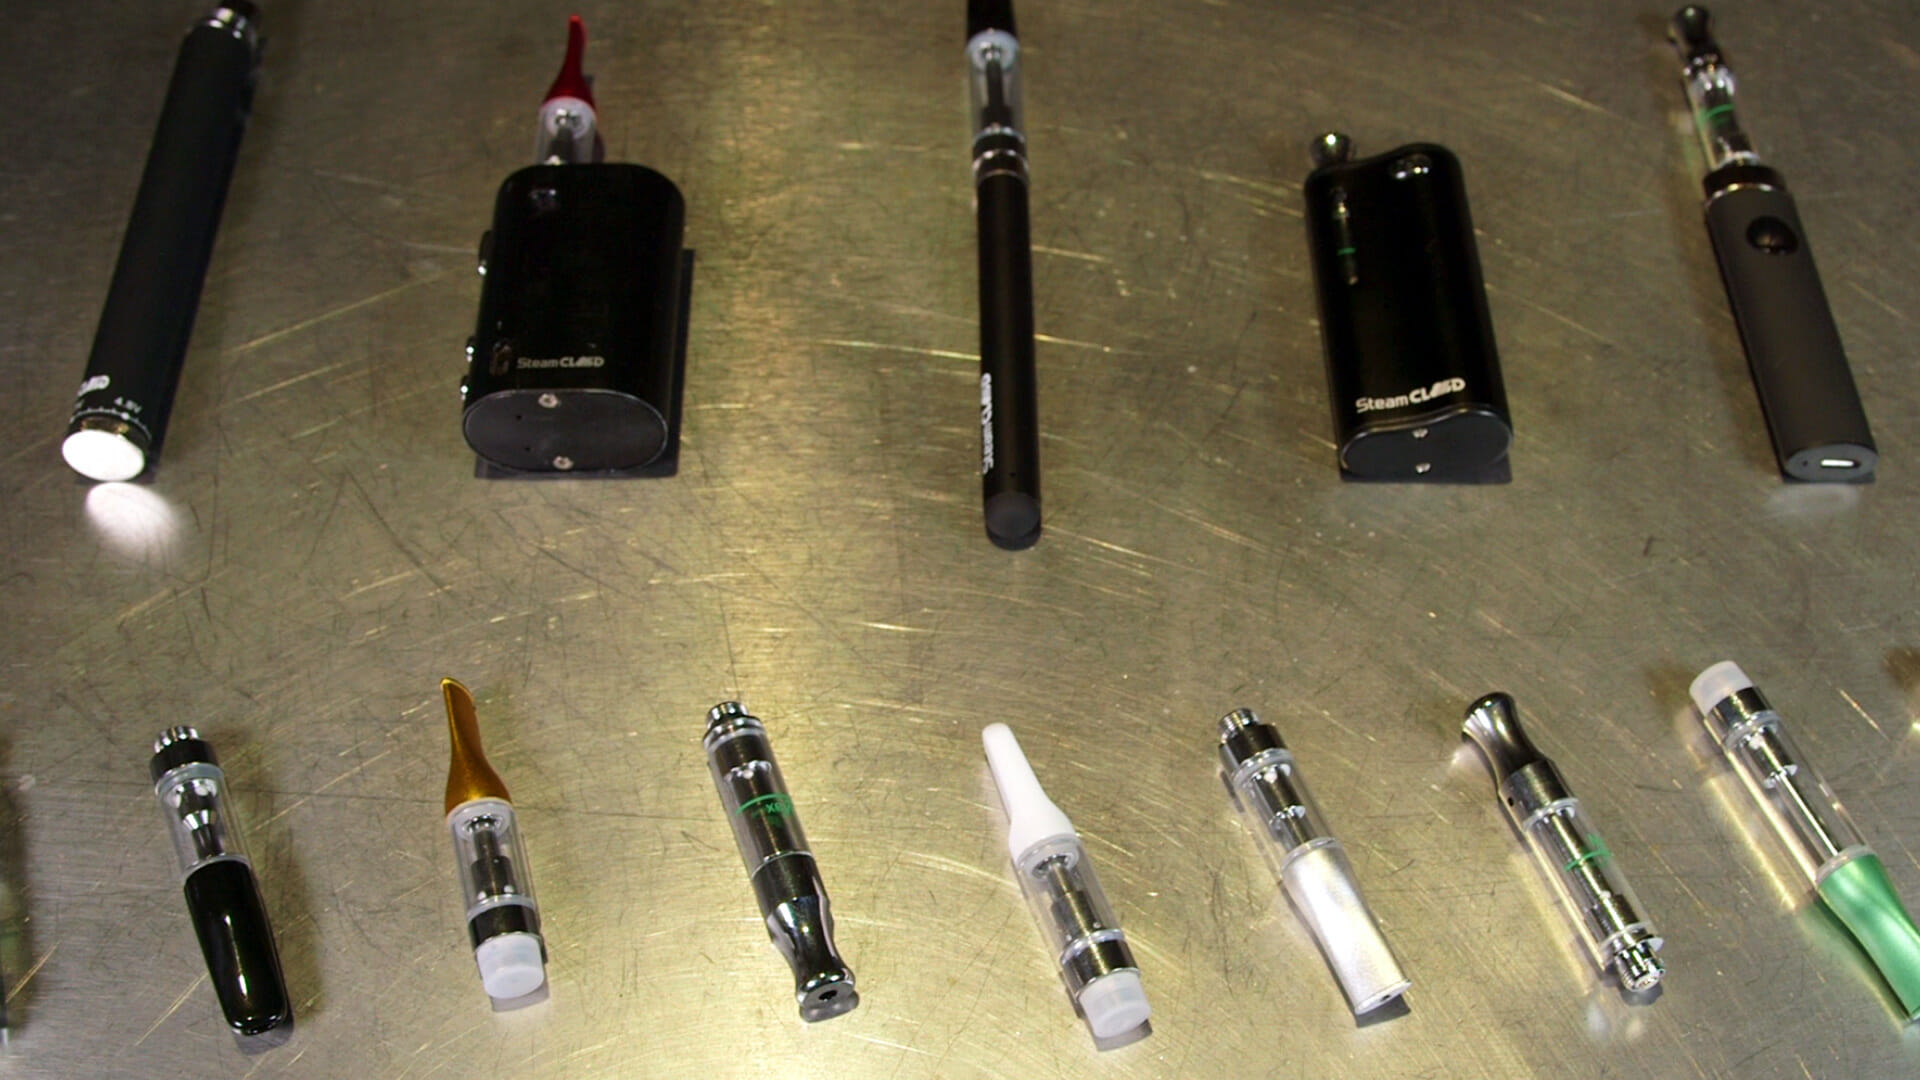 oil-cartridges-with-vape-pens-cannabasics-110-thumbnail-1